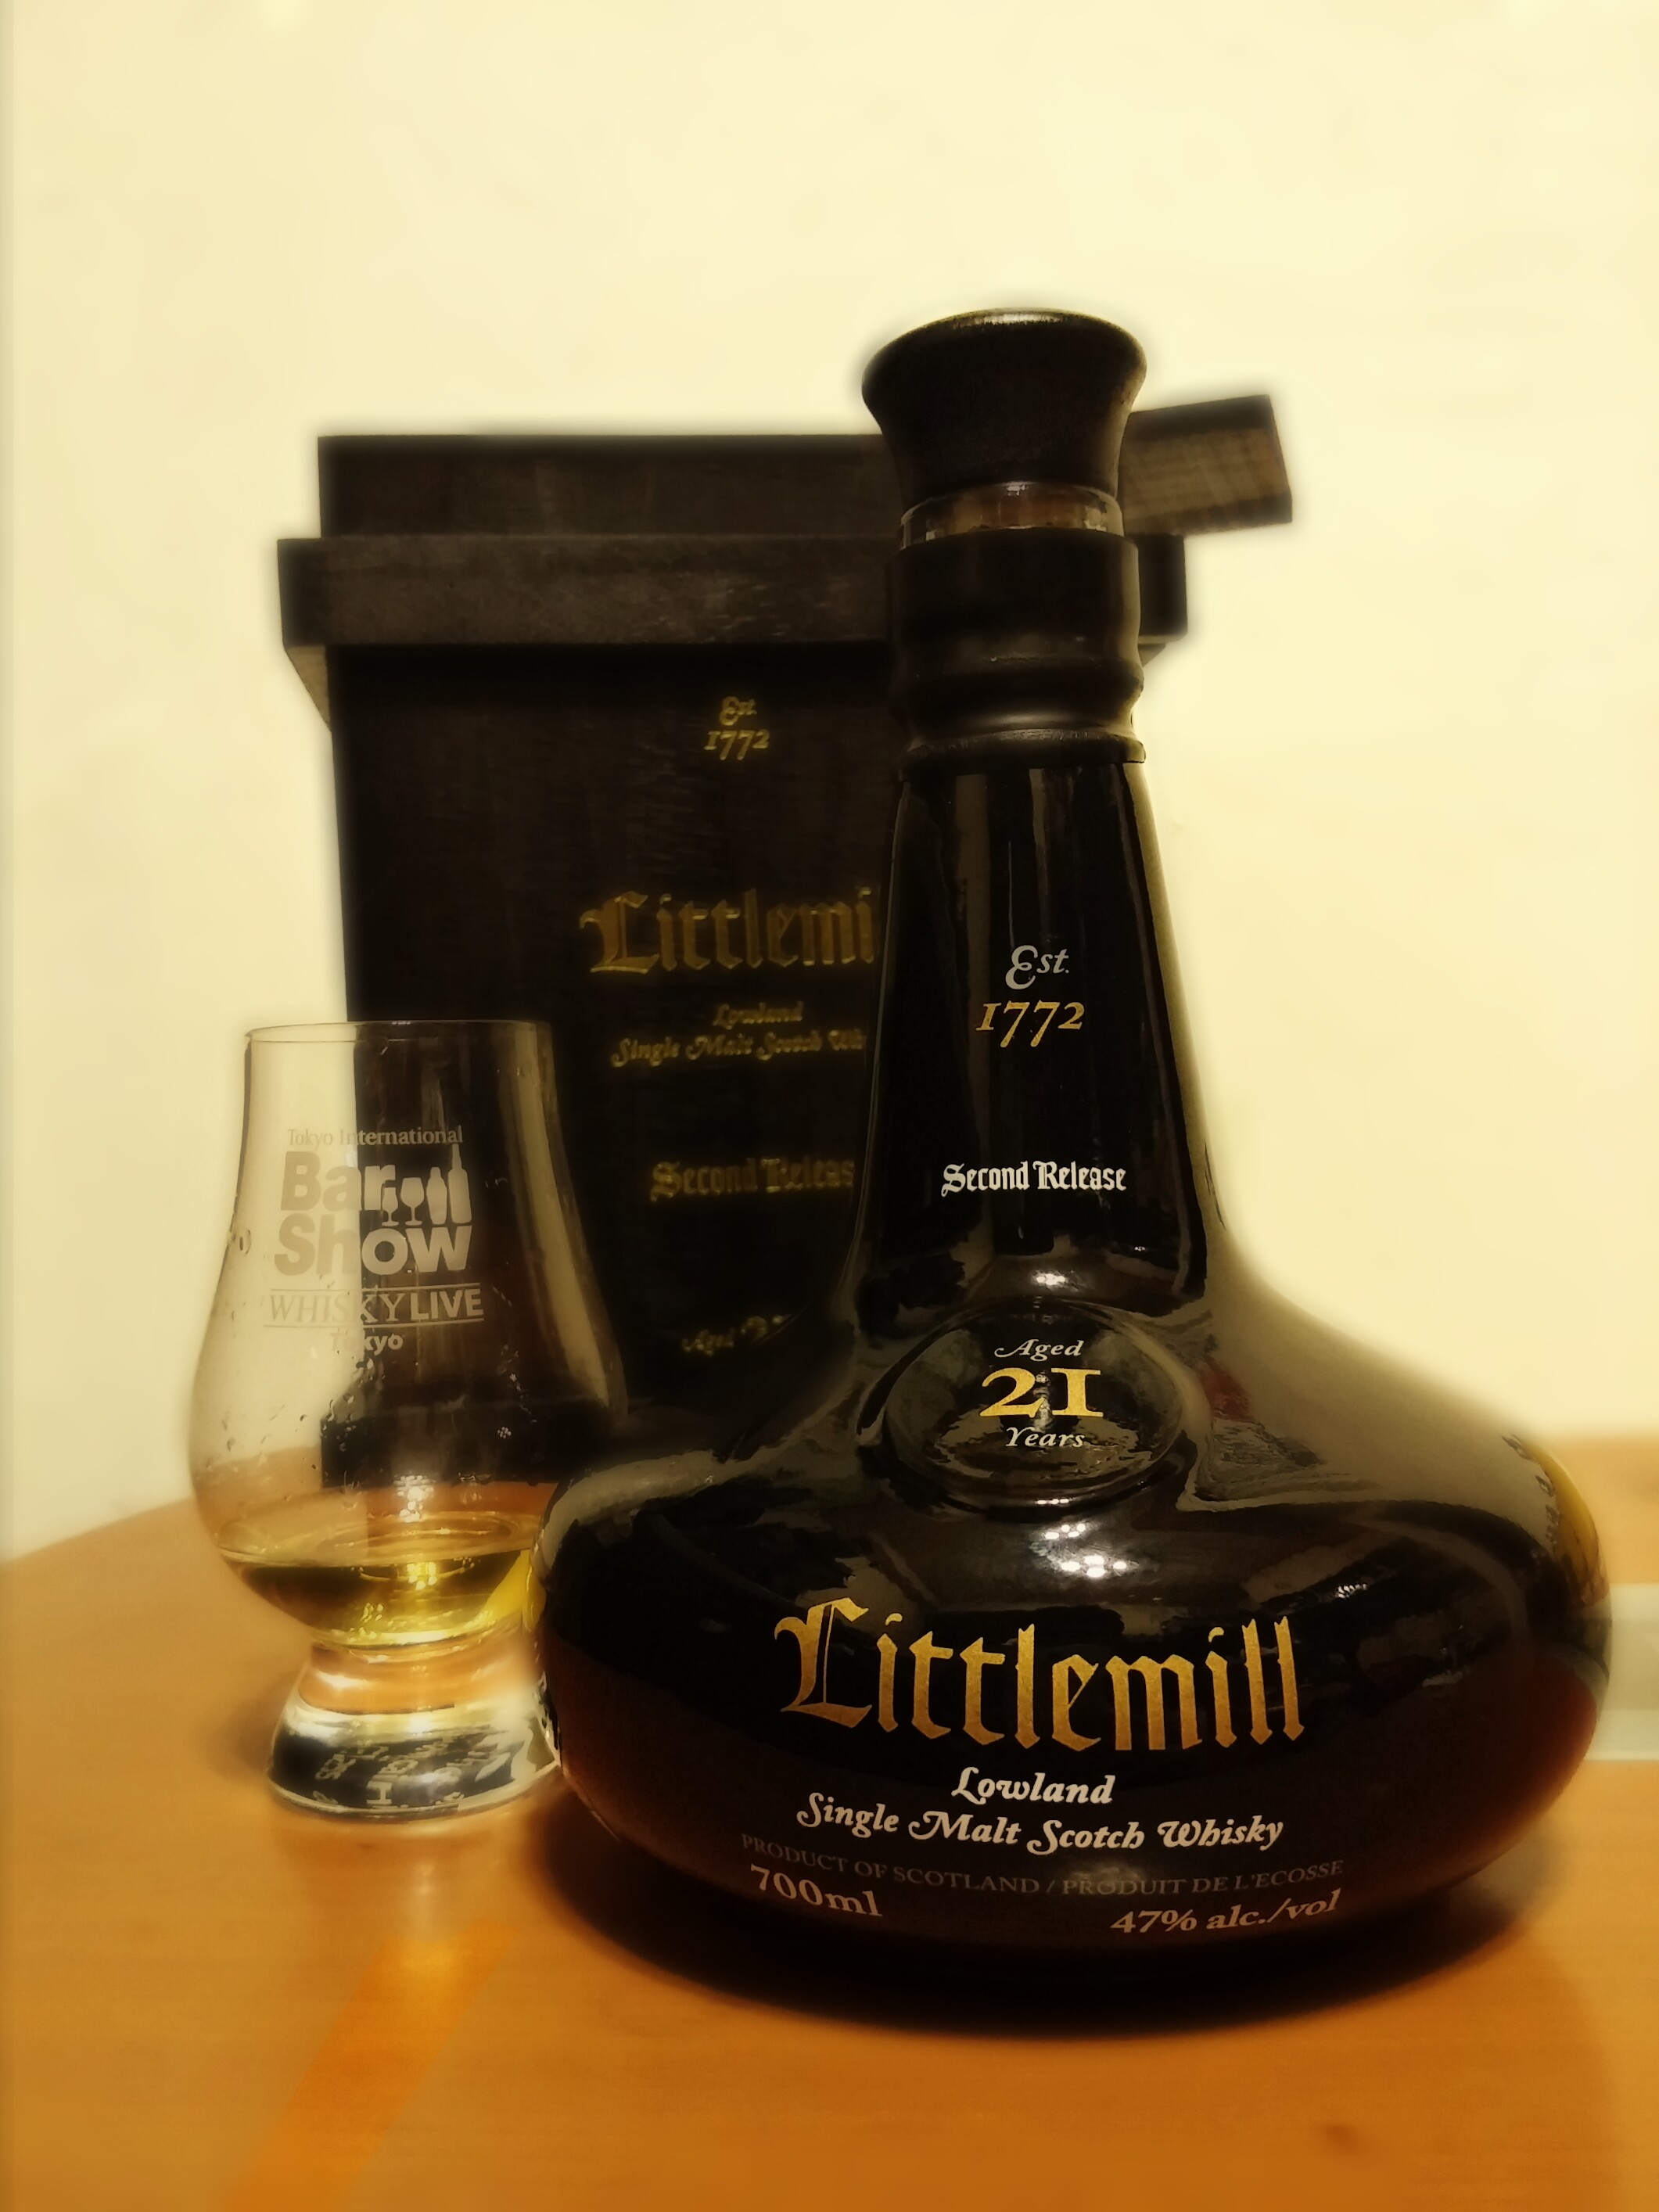 Littlemill 21 years old (2nd Release)